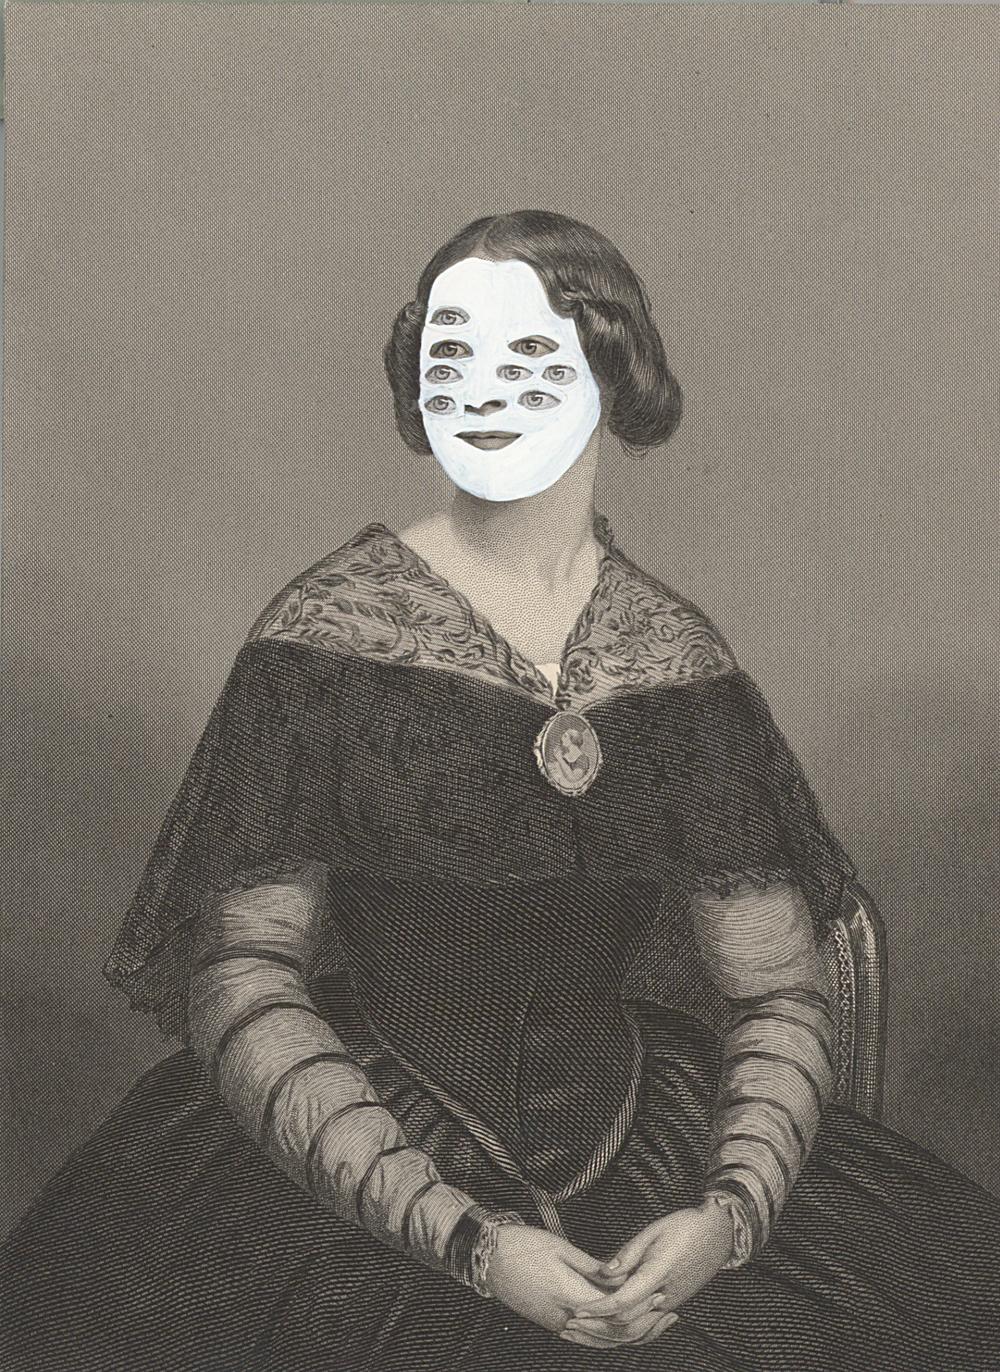 "Mrs. Edgar Cahill 1860/2014 , gouache and collage on 19th century engraving, 7.5"" x 5"", 2014"